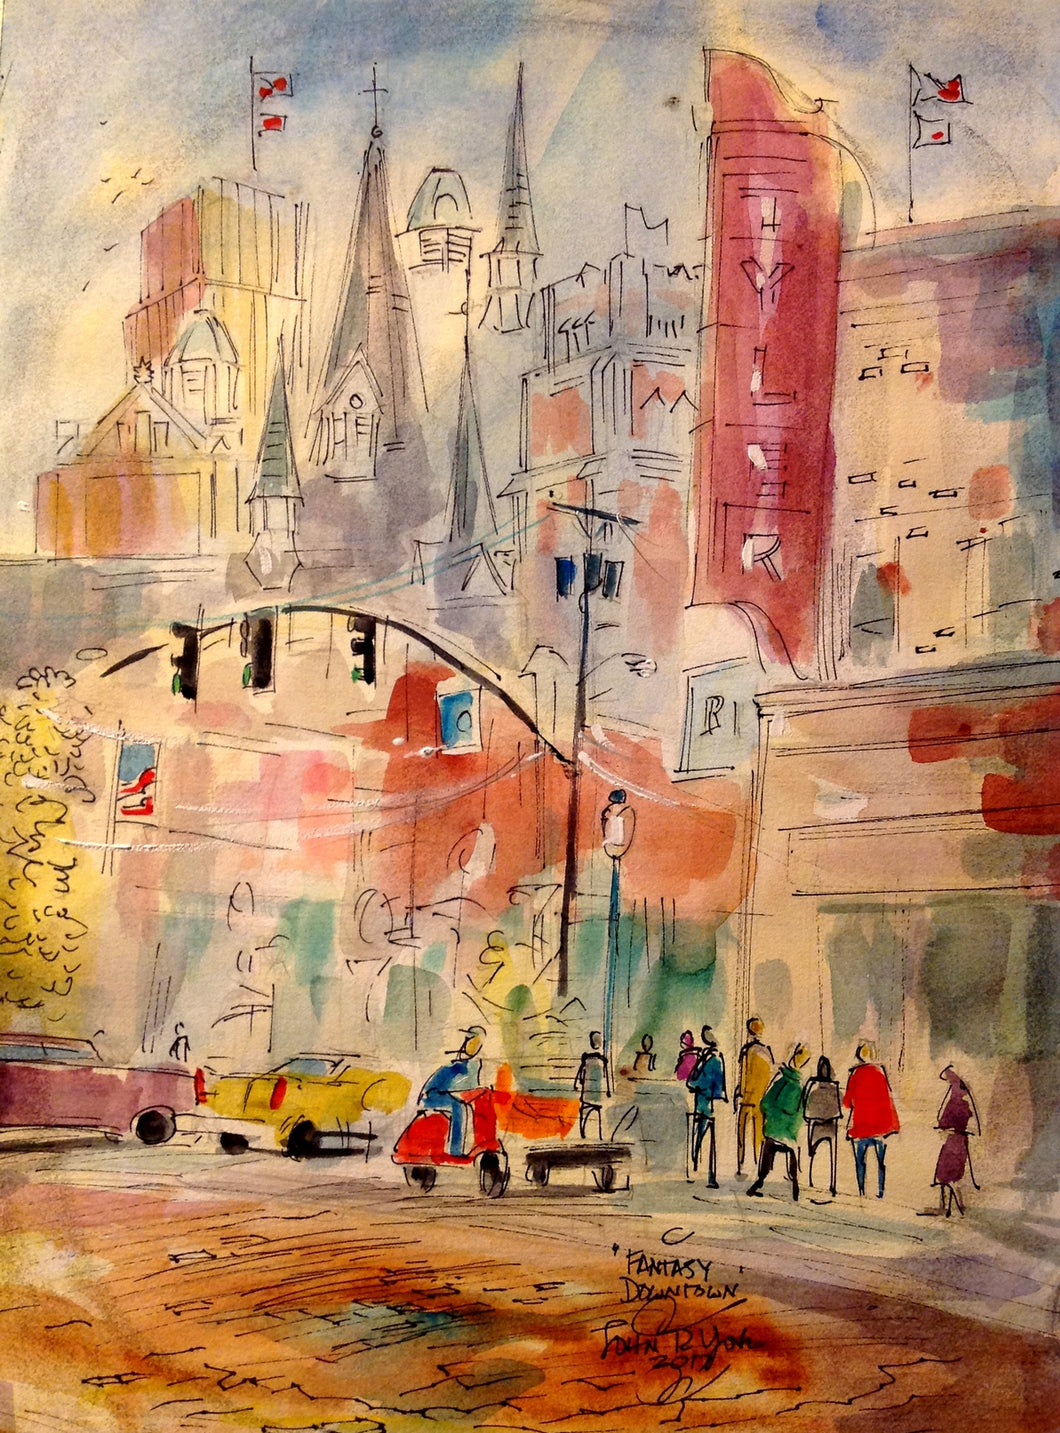 Fantasy Downtown Tyler, American Watercolor Artist, John York, 11 x 15 inches, unframed